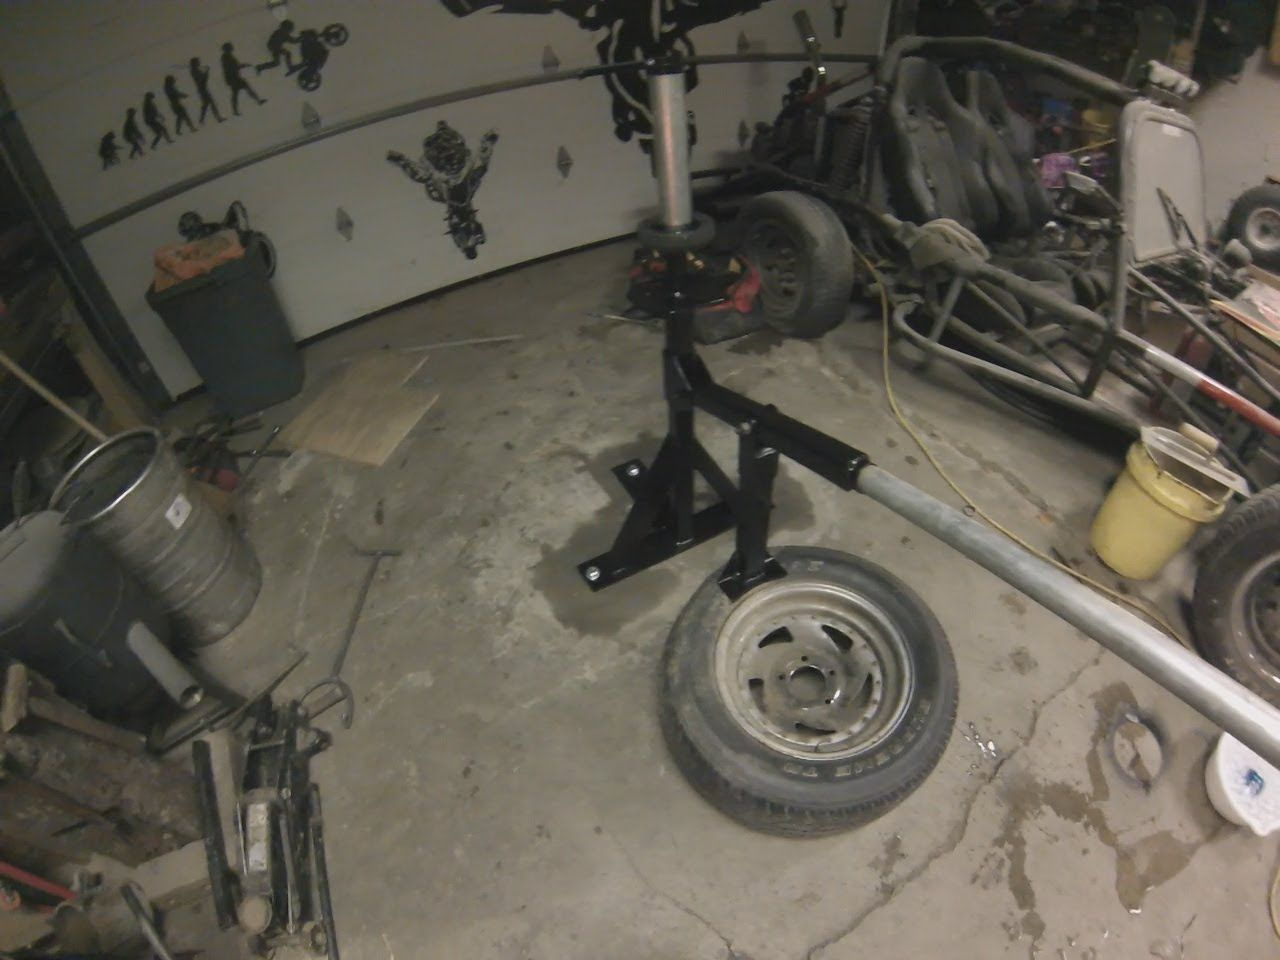 How To Build A Homemade Tire Changer From Scrap Metal Scrap Metal Metal Projects Tire